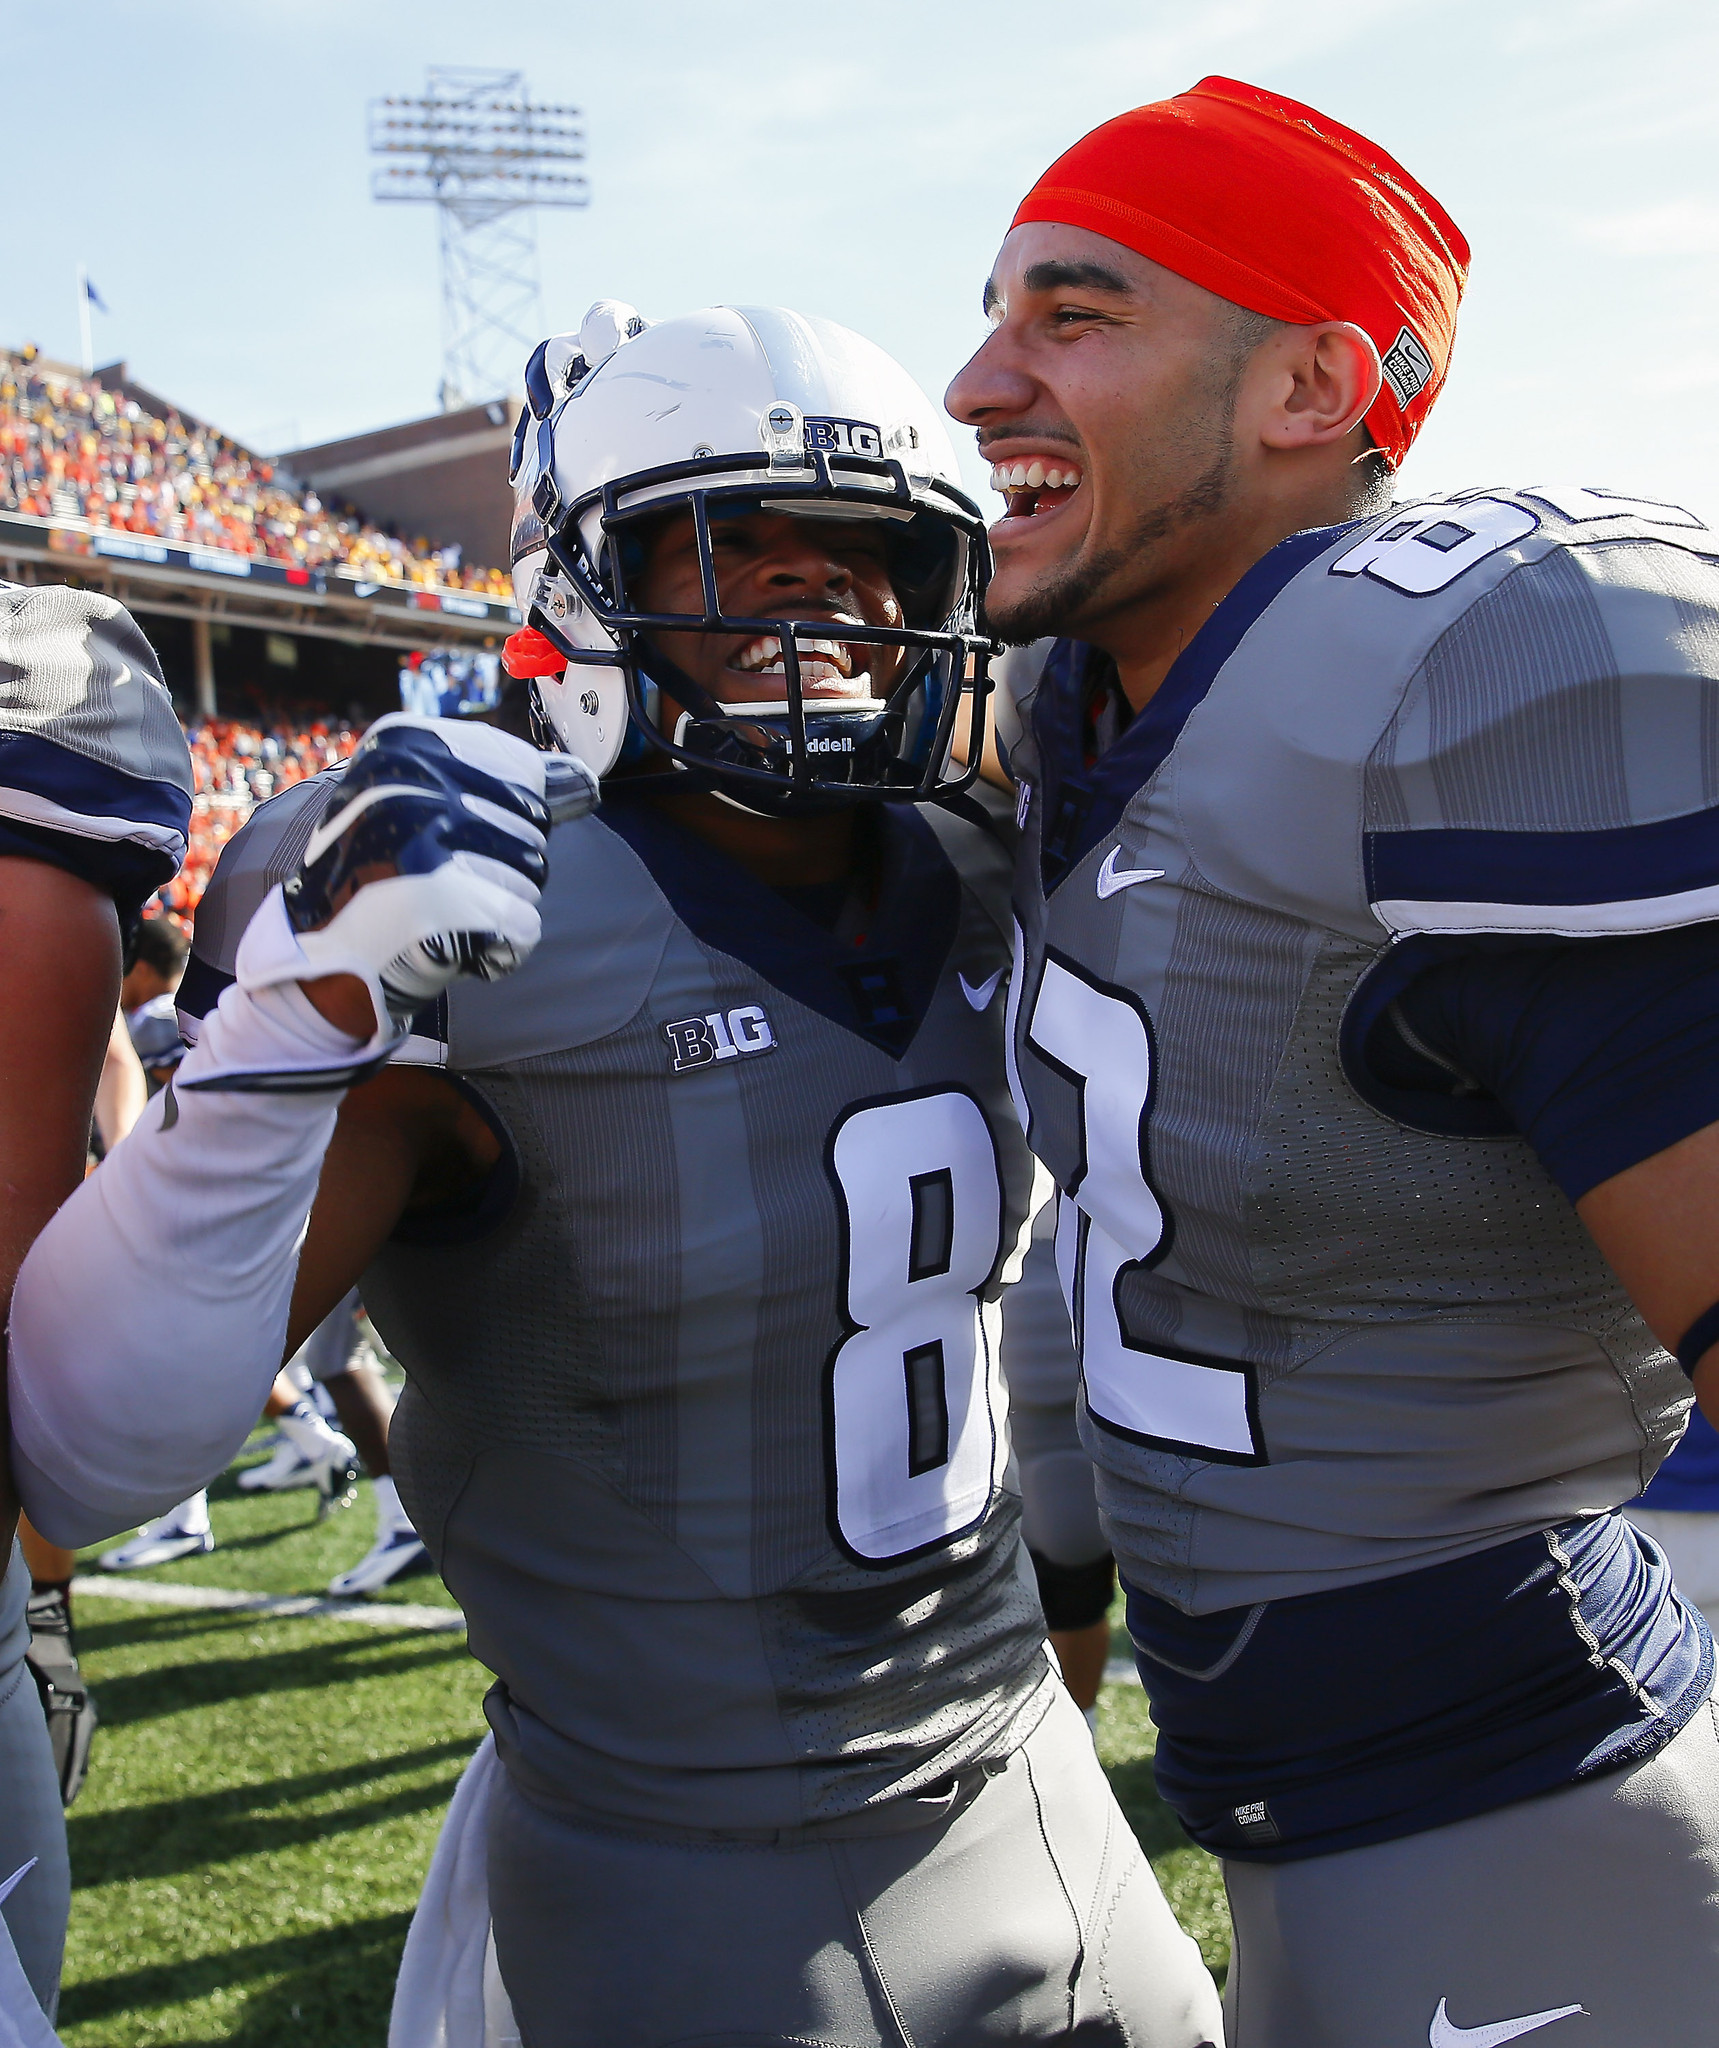 Illinois hopes emotional win carries over to Ohio State game